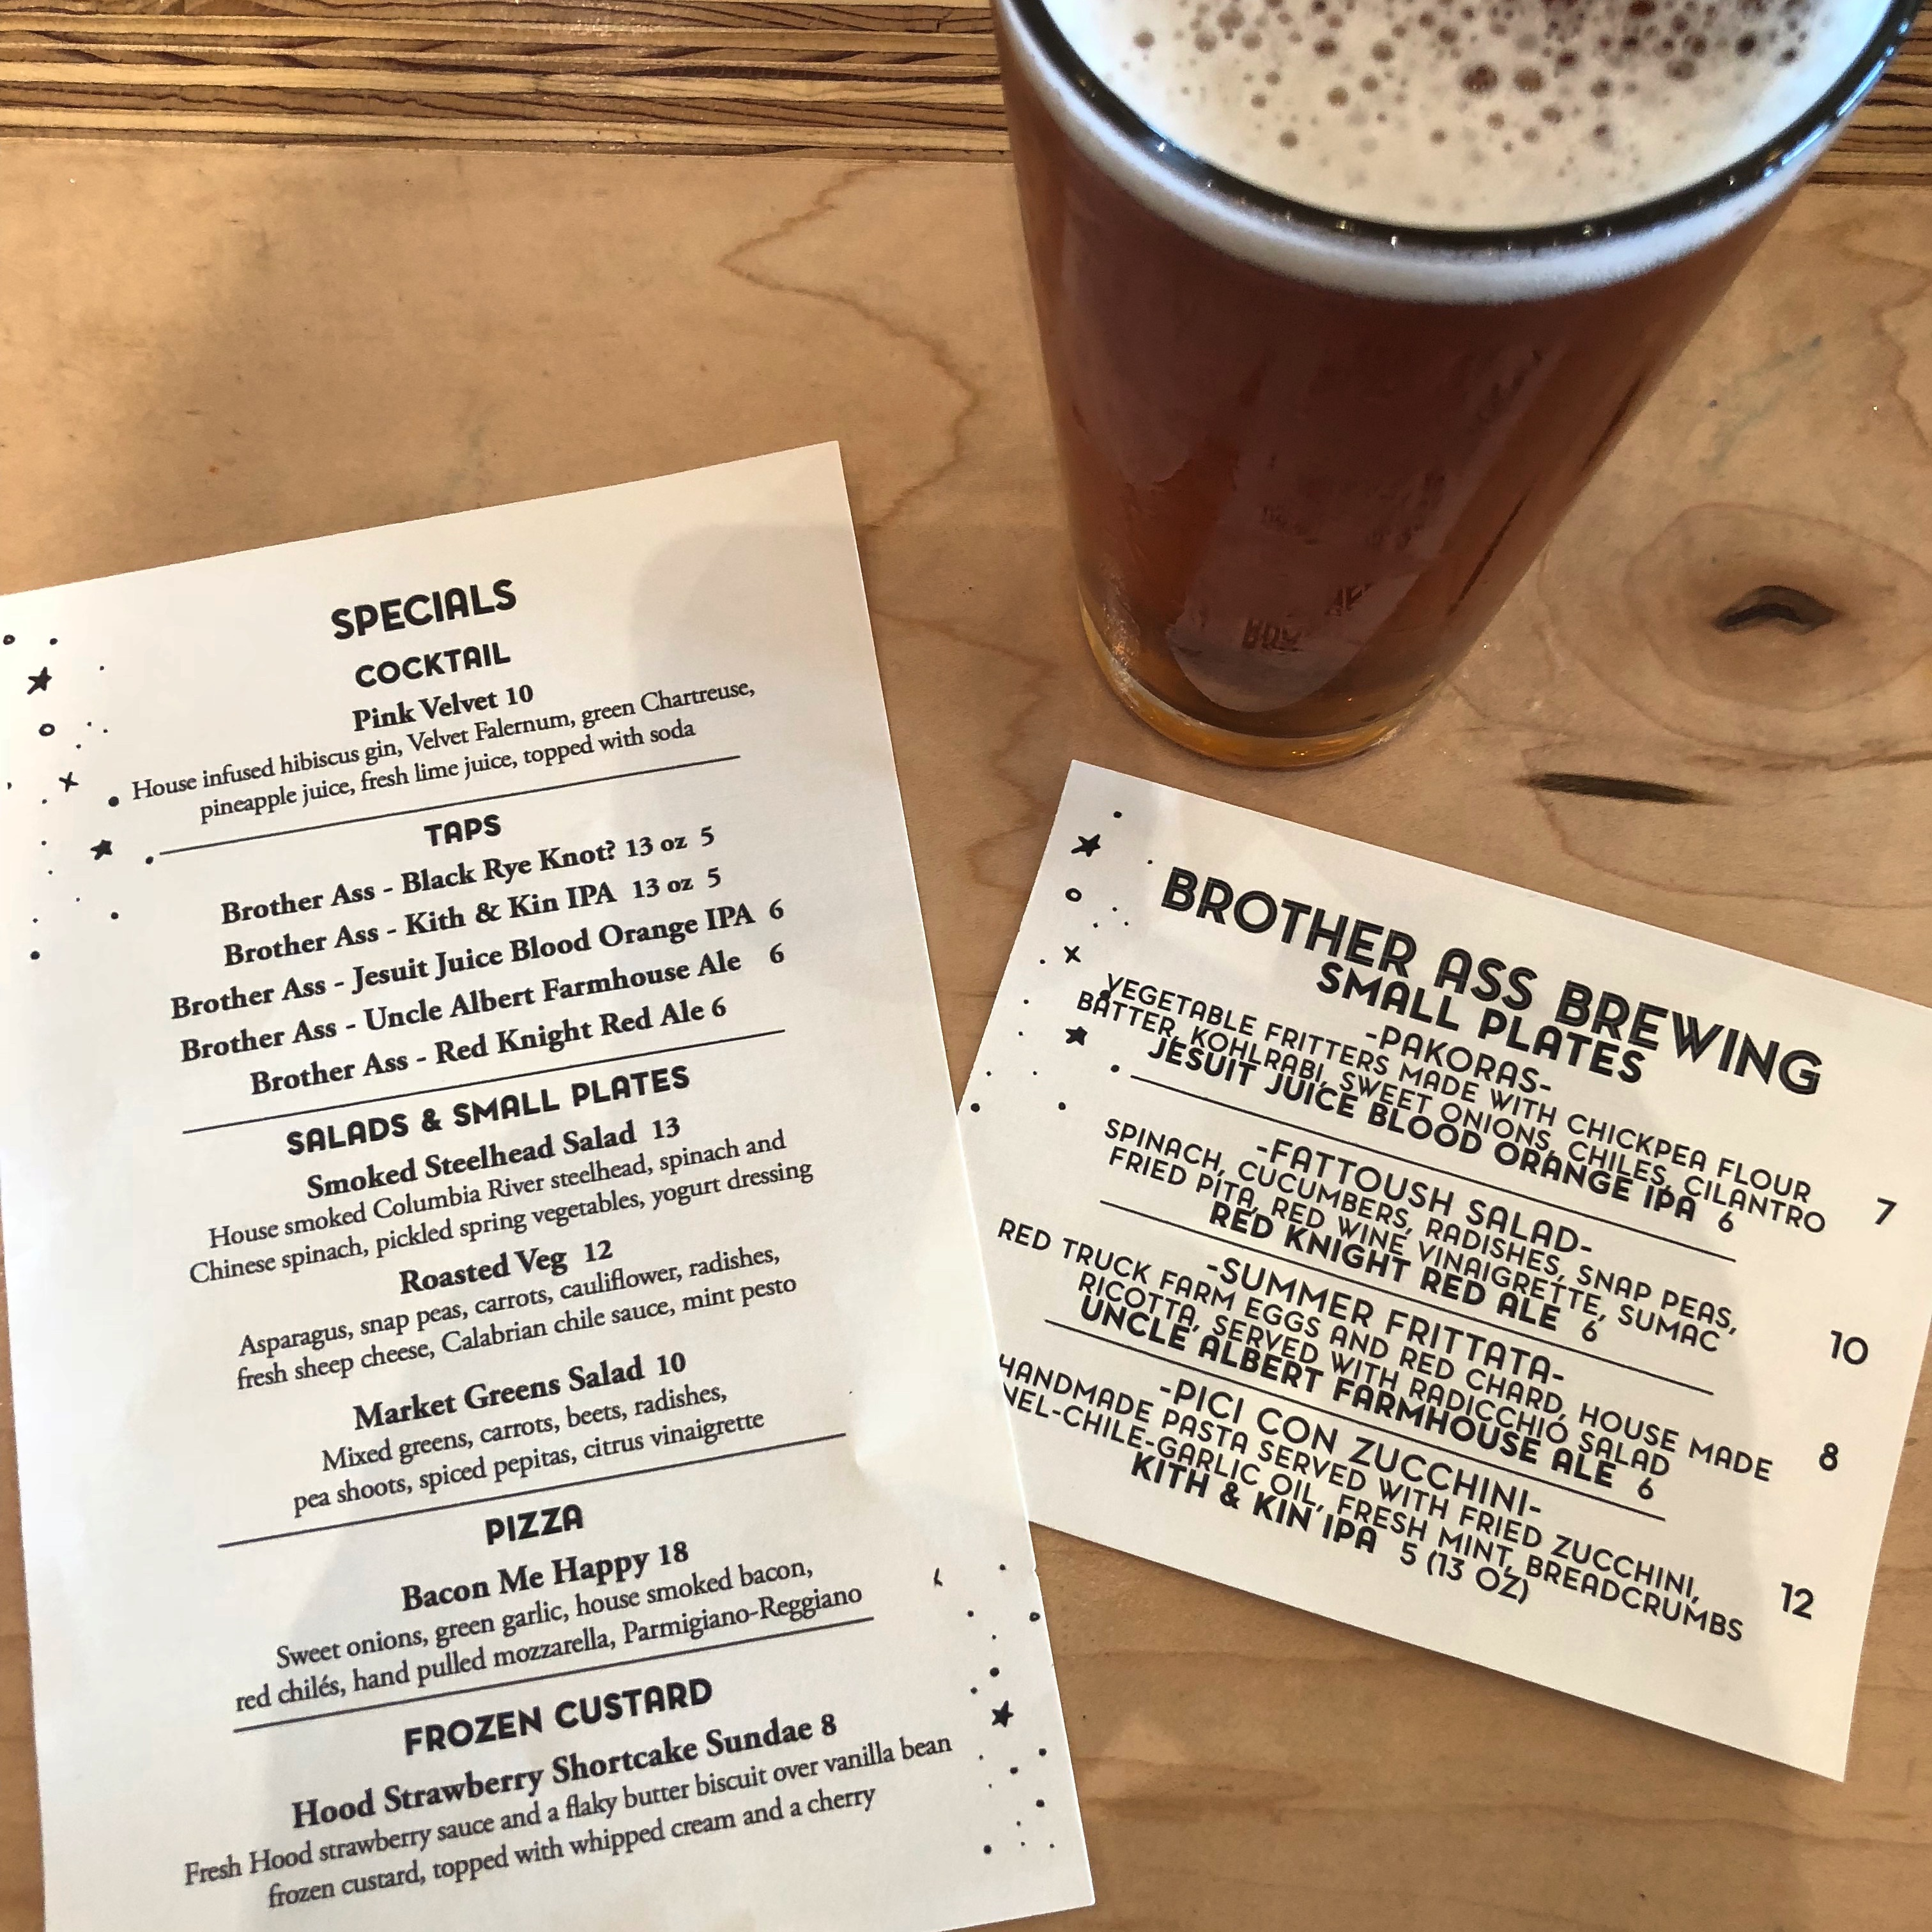 A beer and menu from a recent tap takeover event with Brother Ass Brewing.